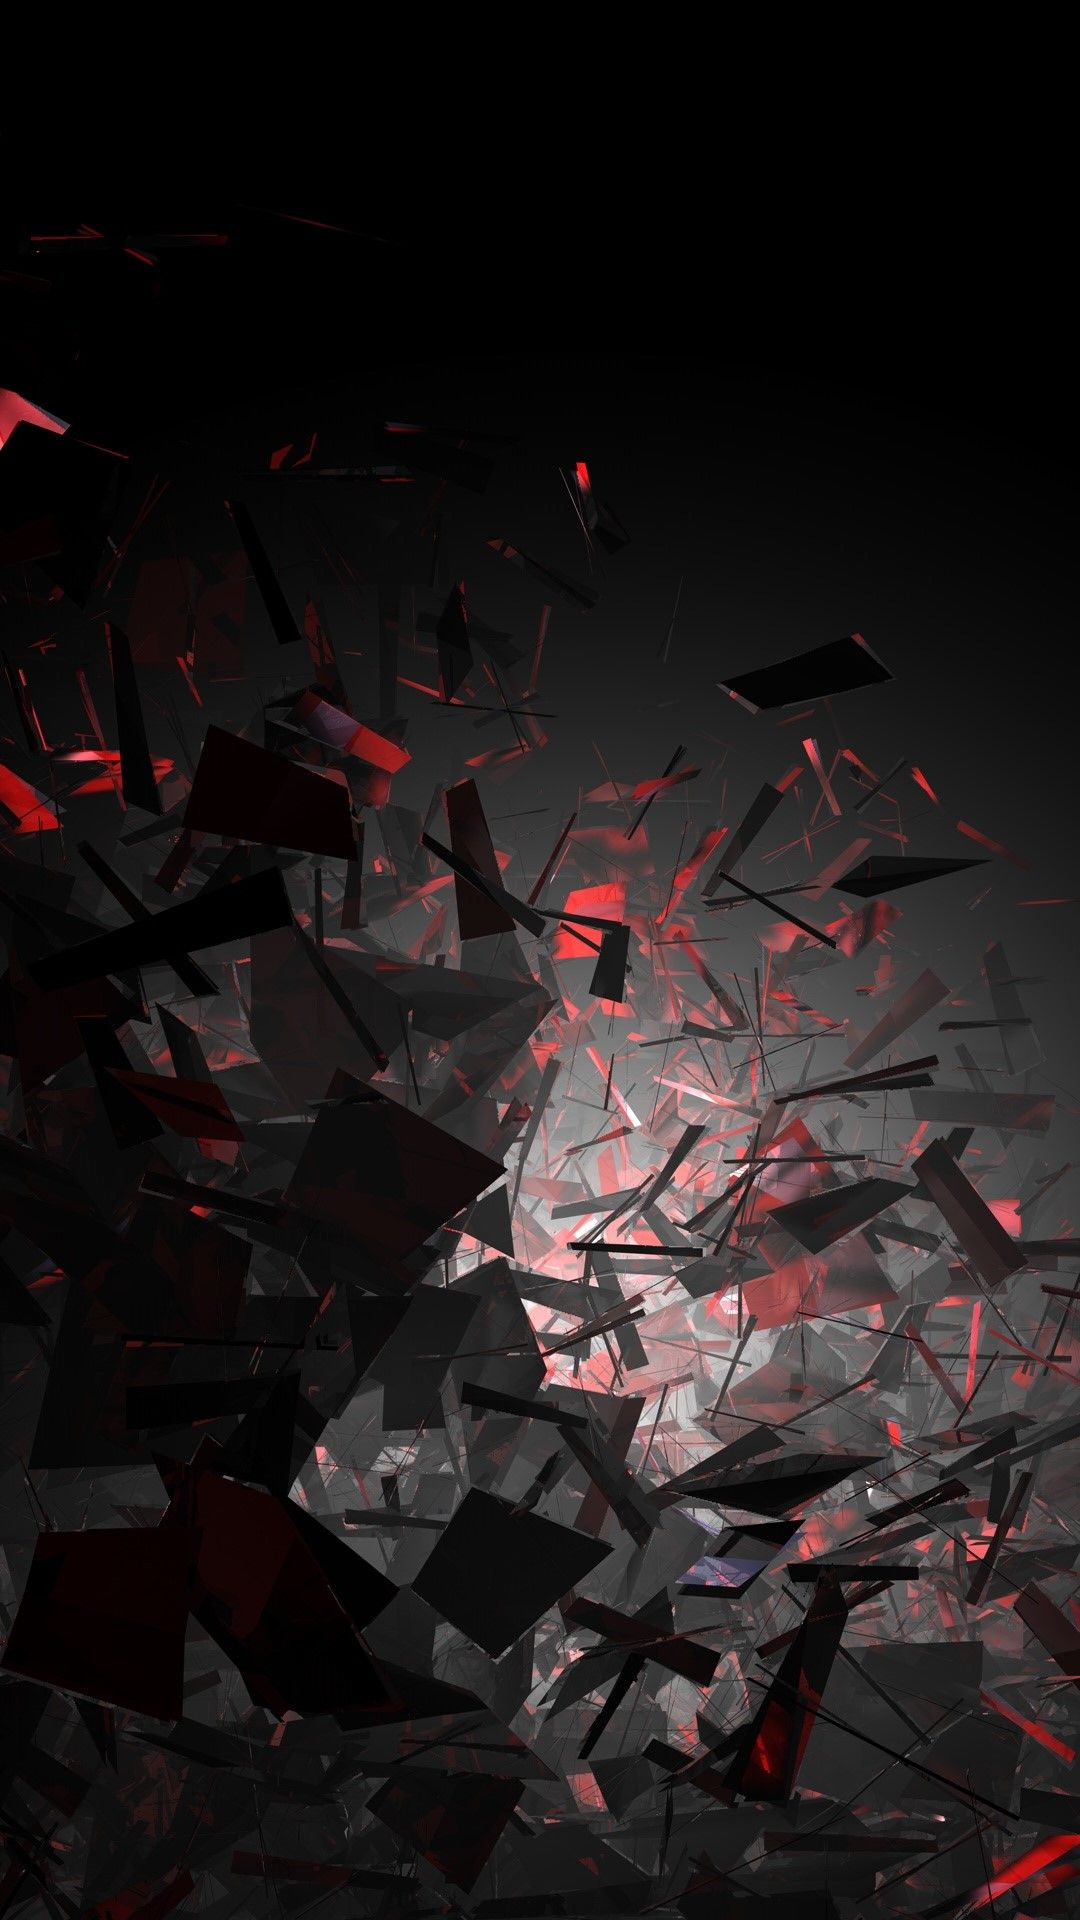 Hd 3d Wallpaper Mobile9 Broken Pieces Tap To See More Cool 3d Abstract Iphone